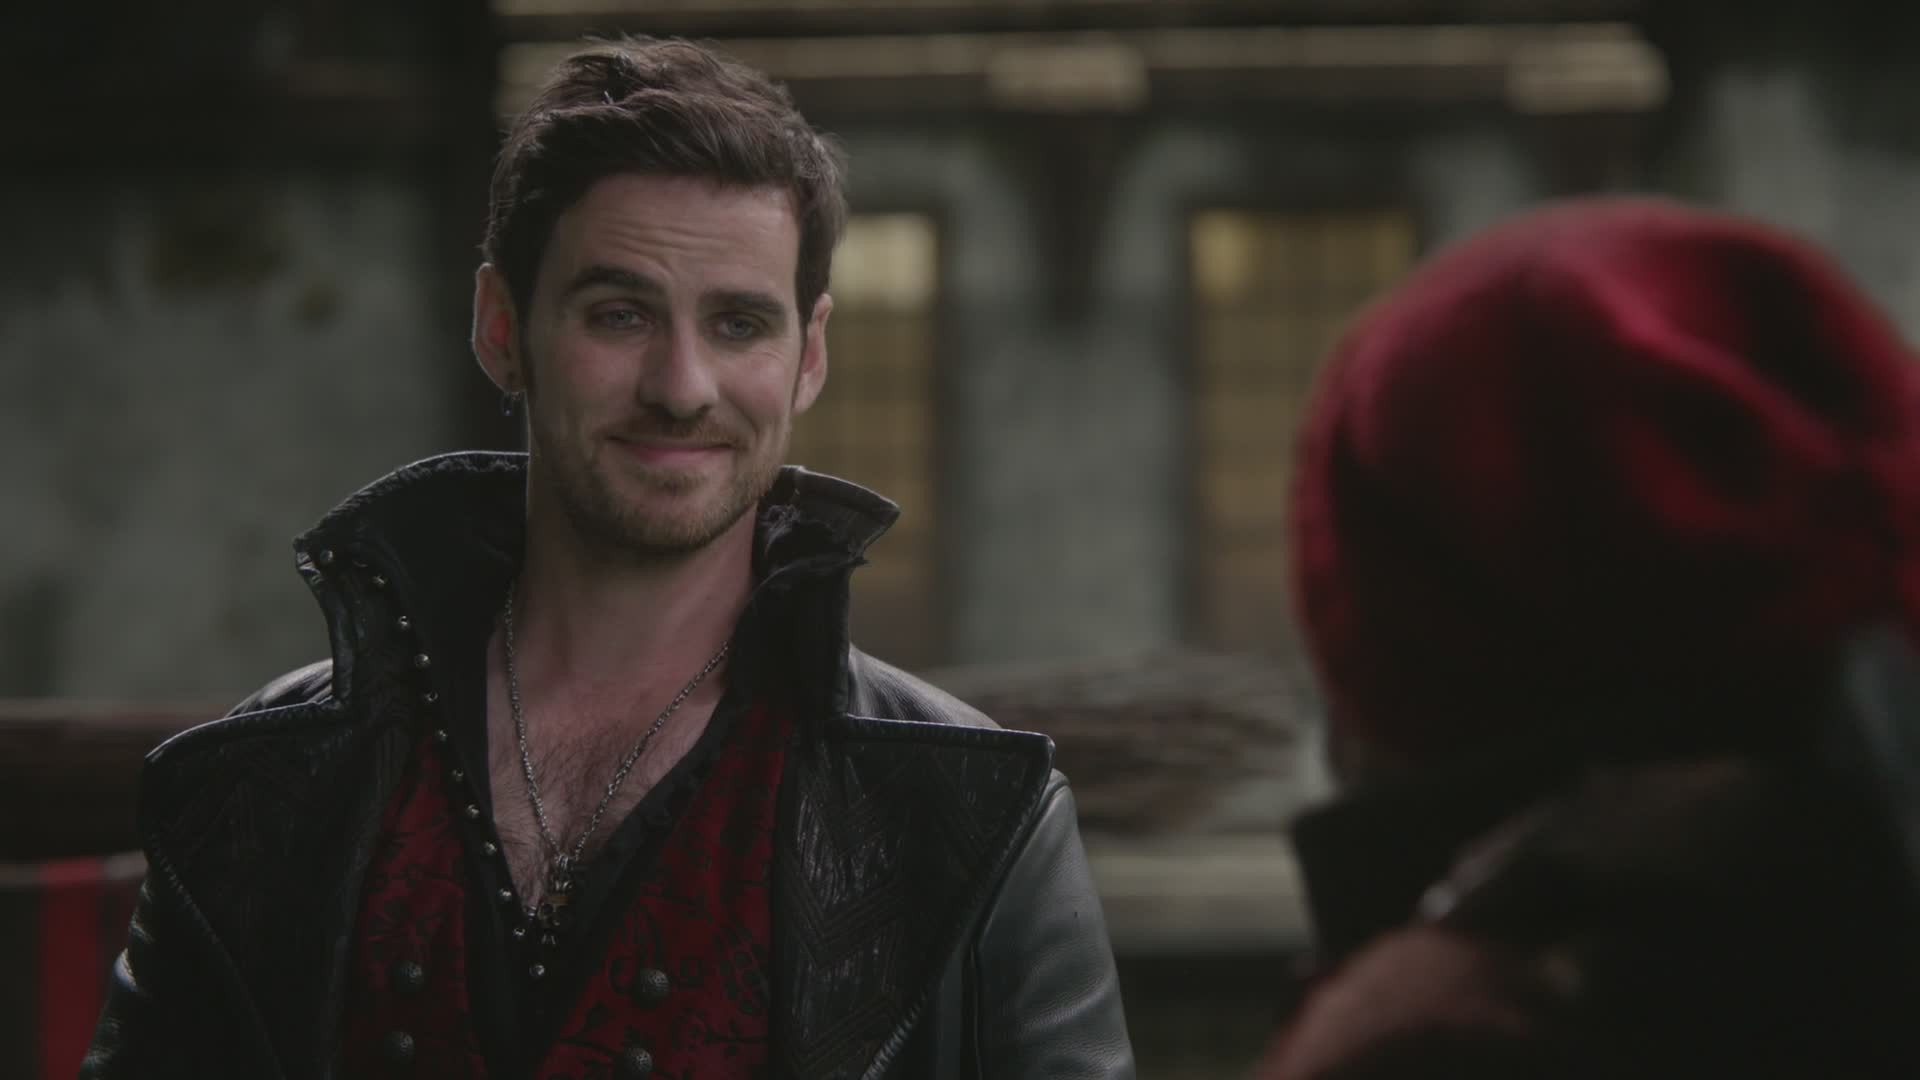 Since Colin O'Donoghue's chemistry with Jennifer was unmatched, he was written as a series regular in Once Upon A Time.